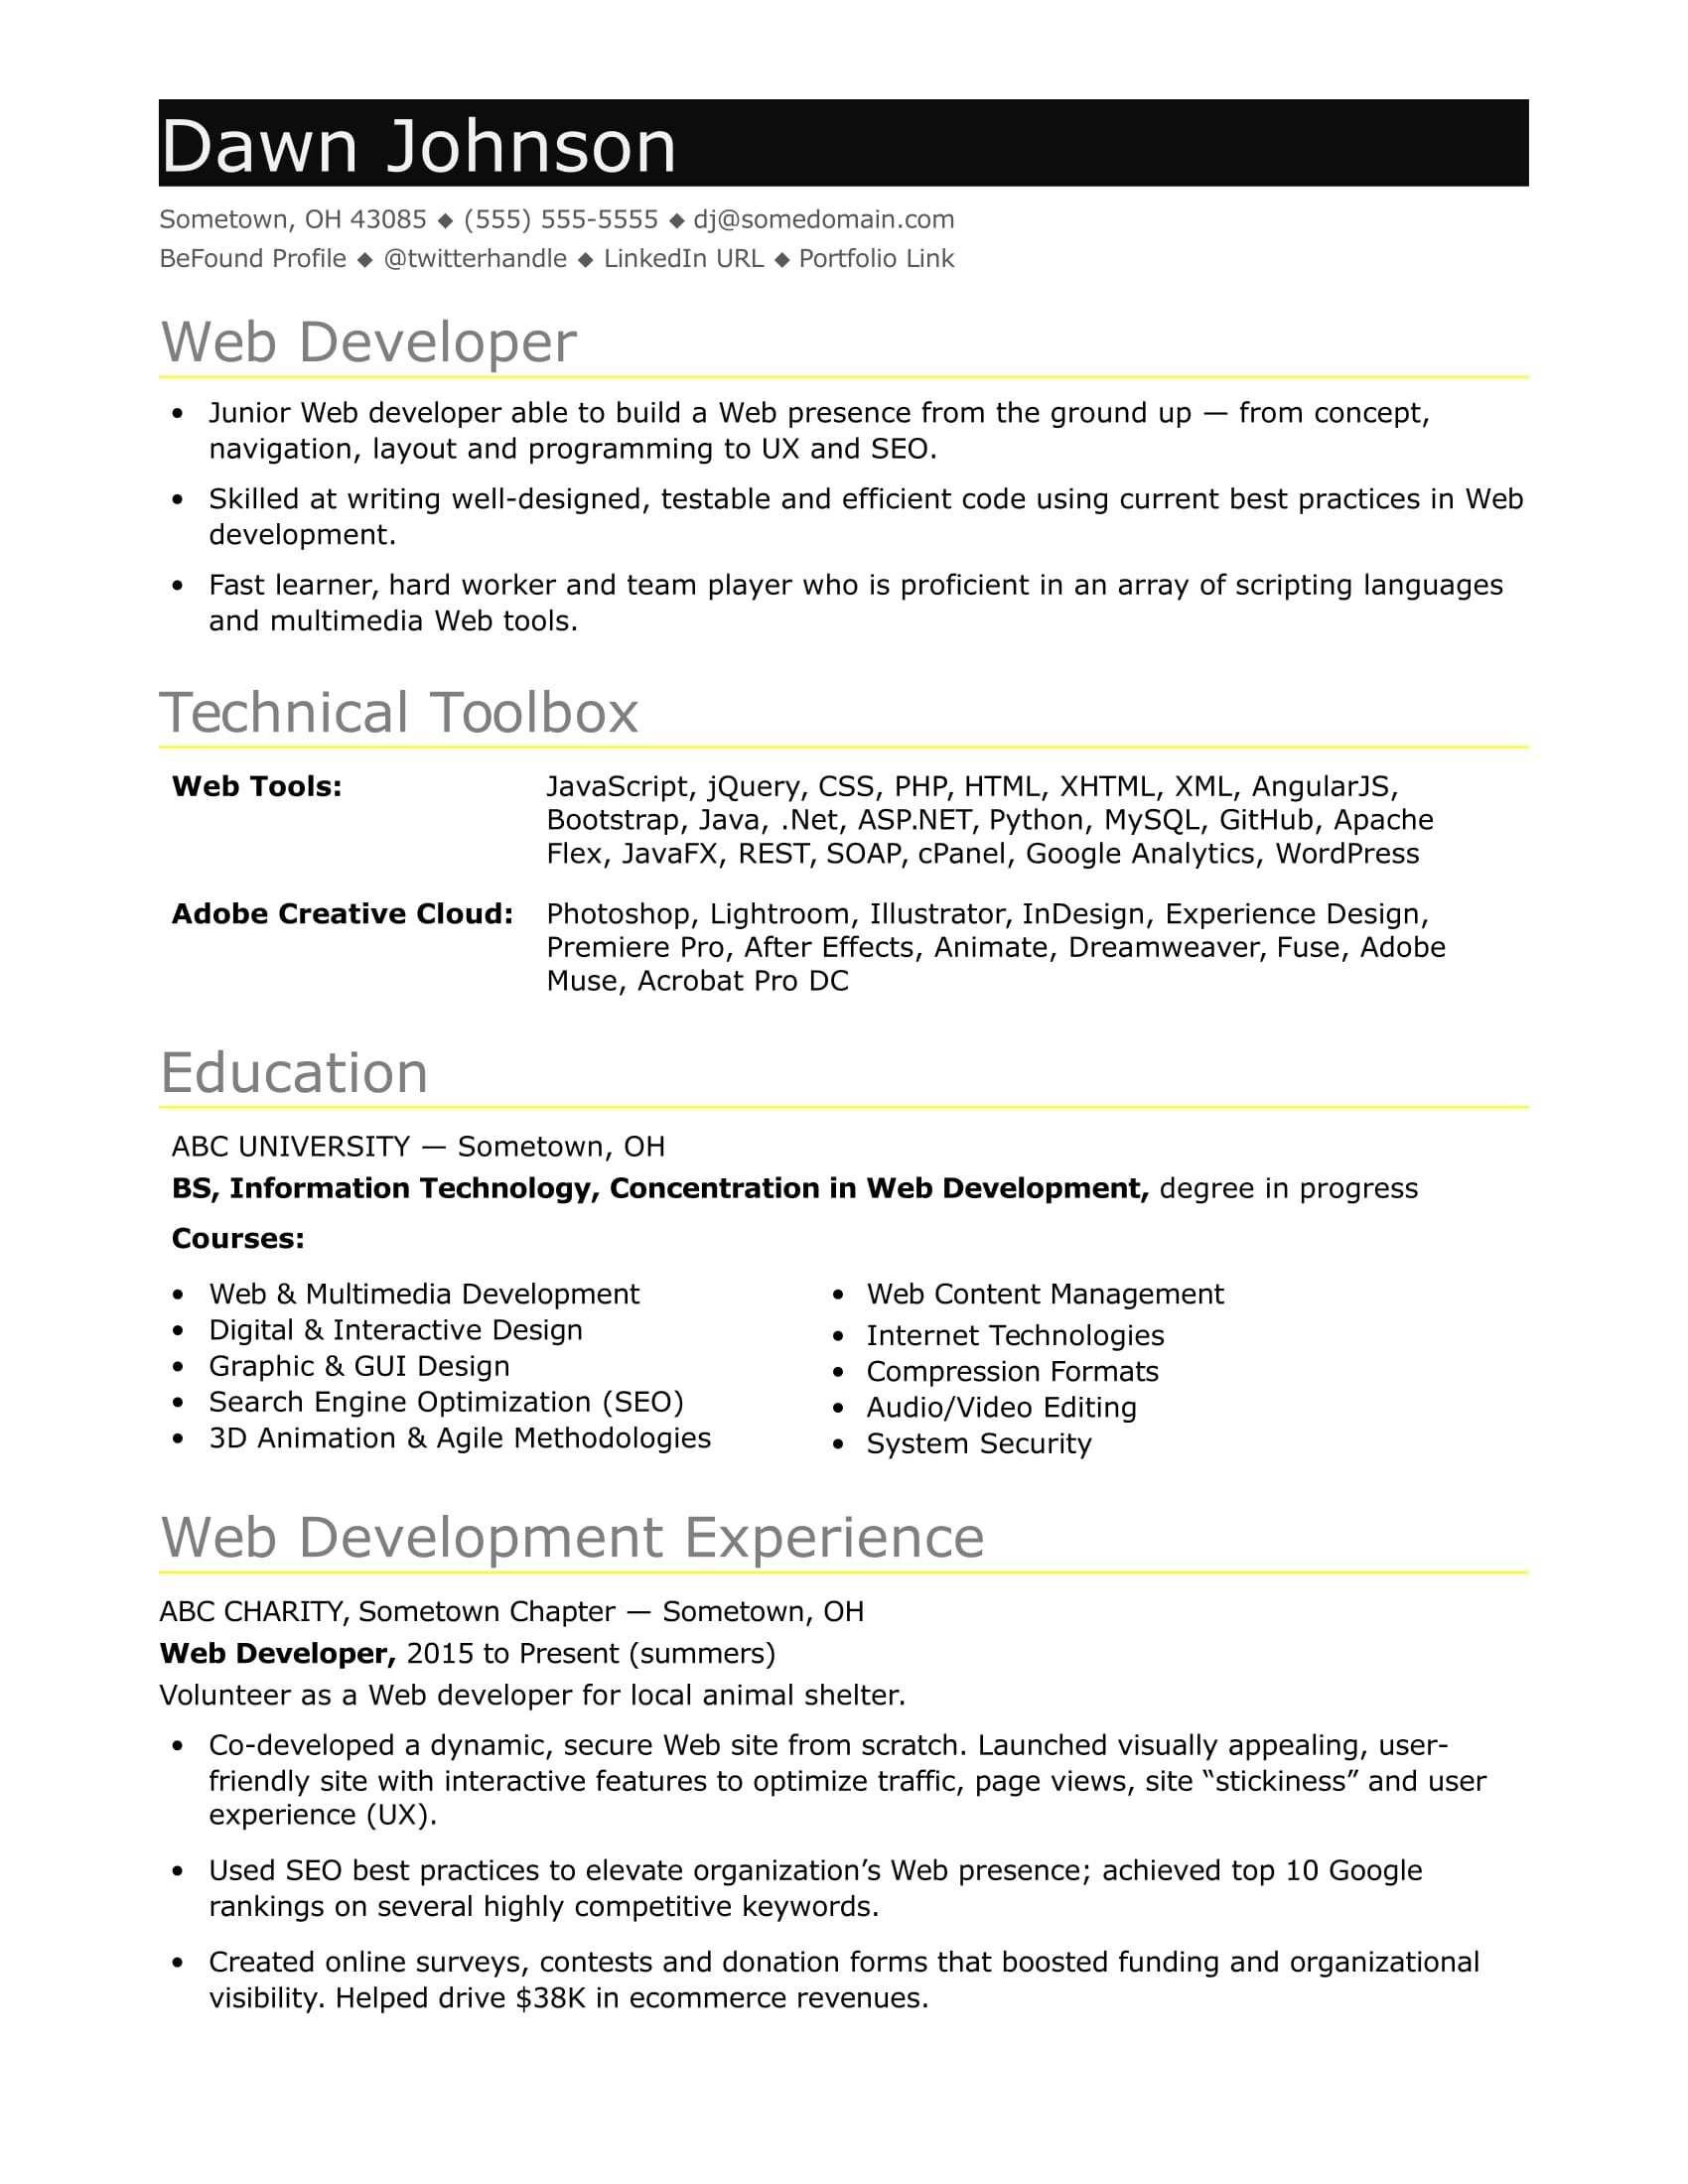 Sample Resume for an Entry-Level IT Developer | Monster com